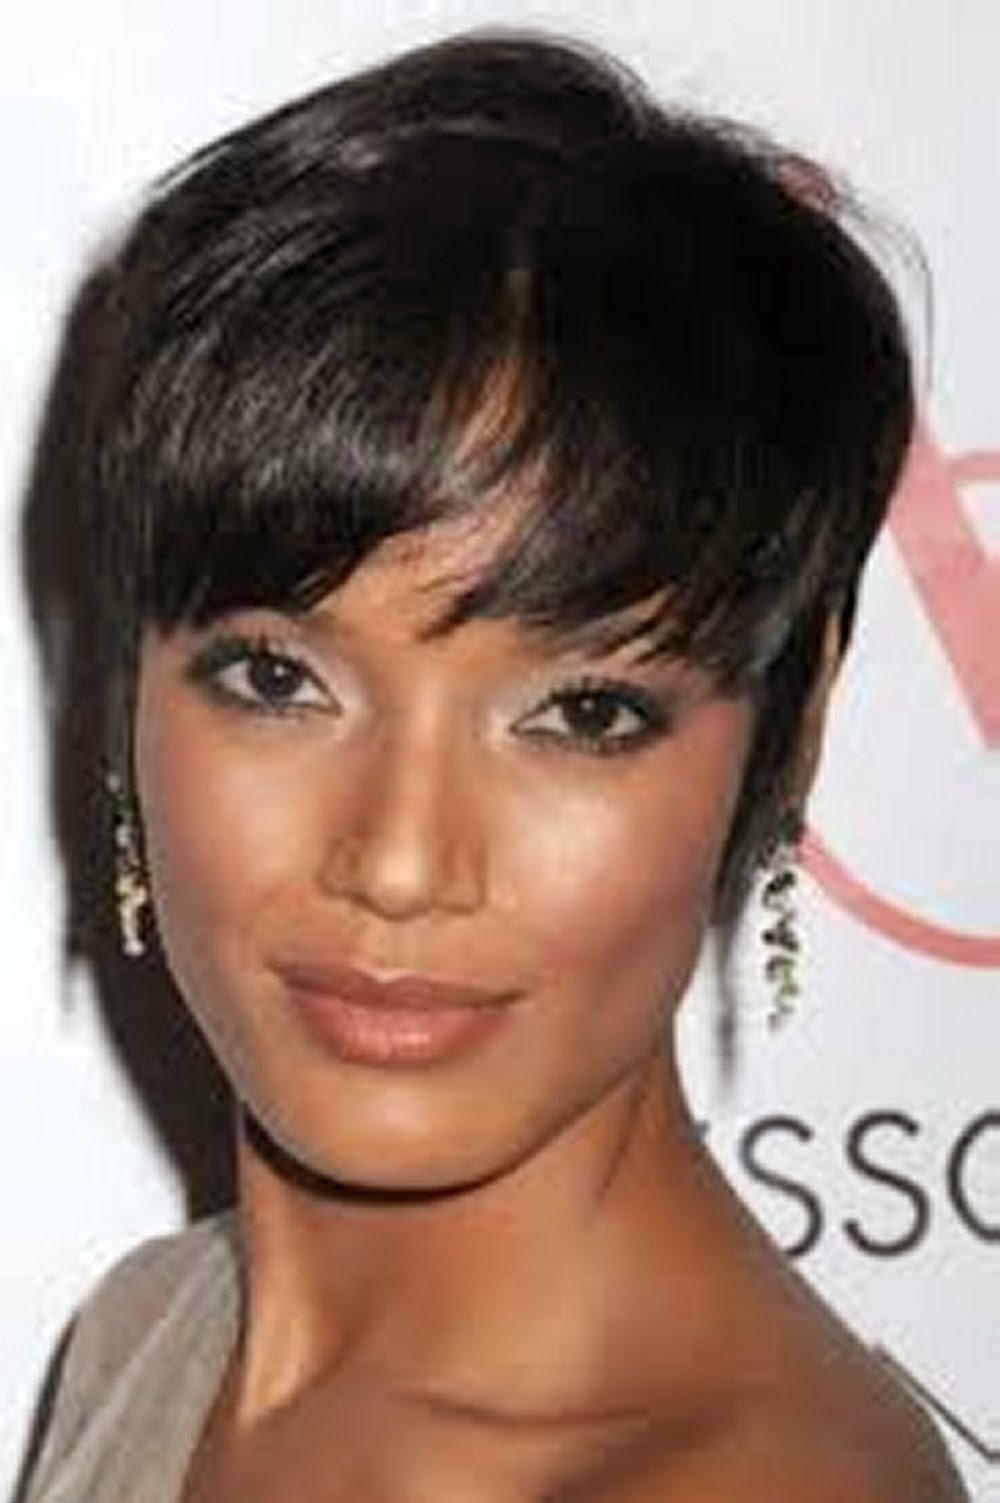 Cu cute bob hairstyles for women over 50 - Short Pixie Hairstyle For Black Women